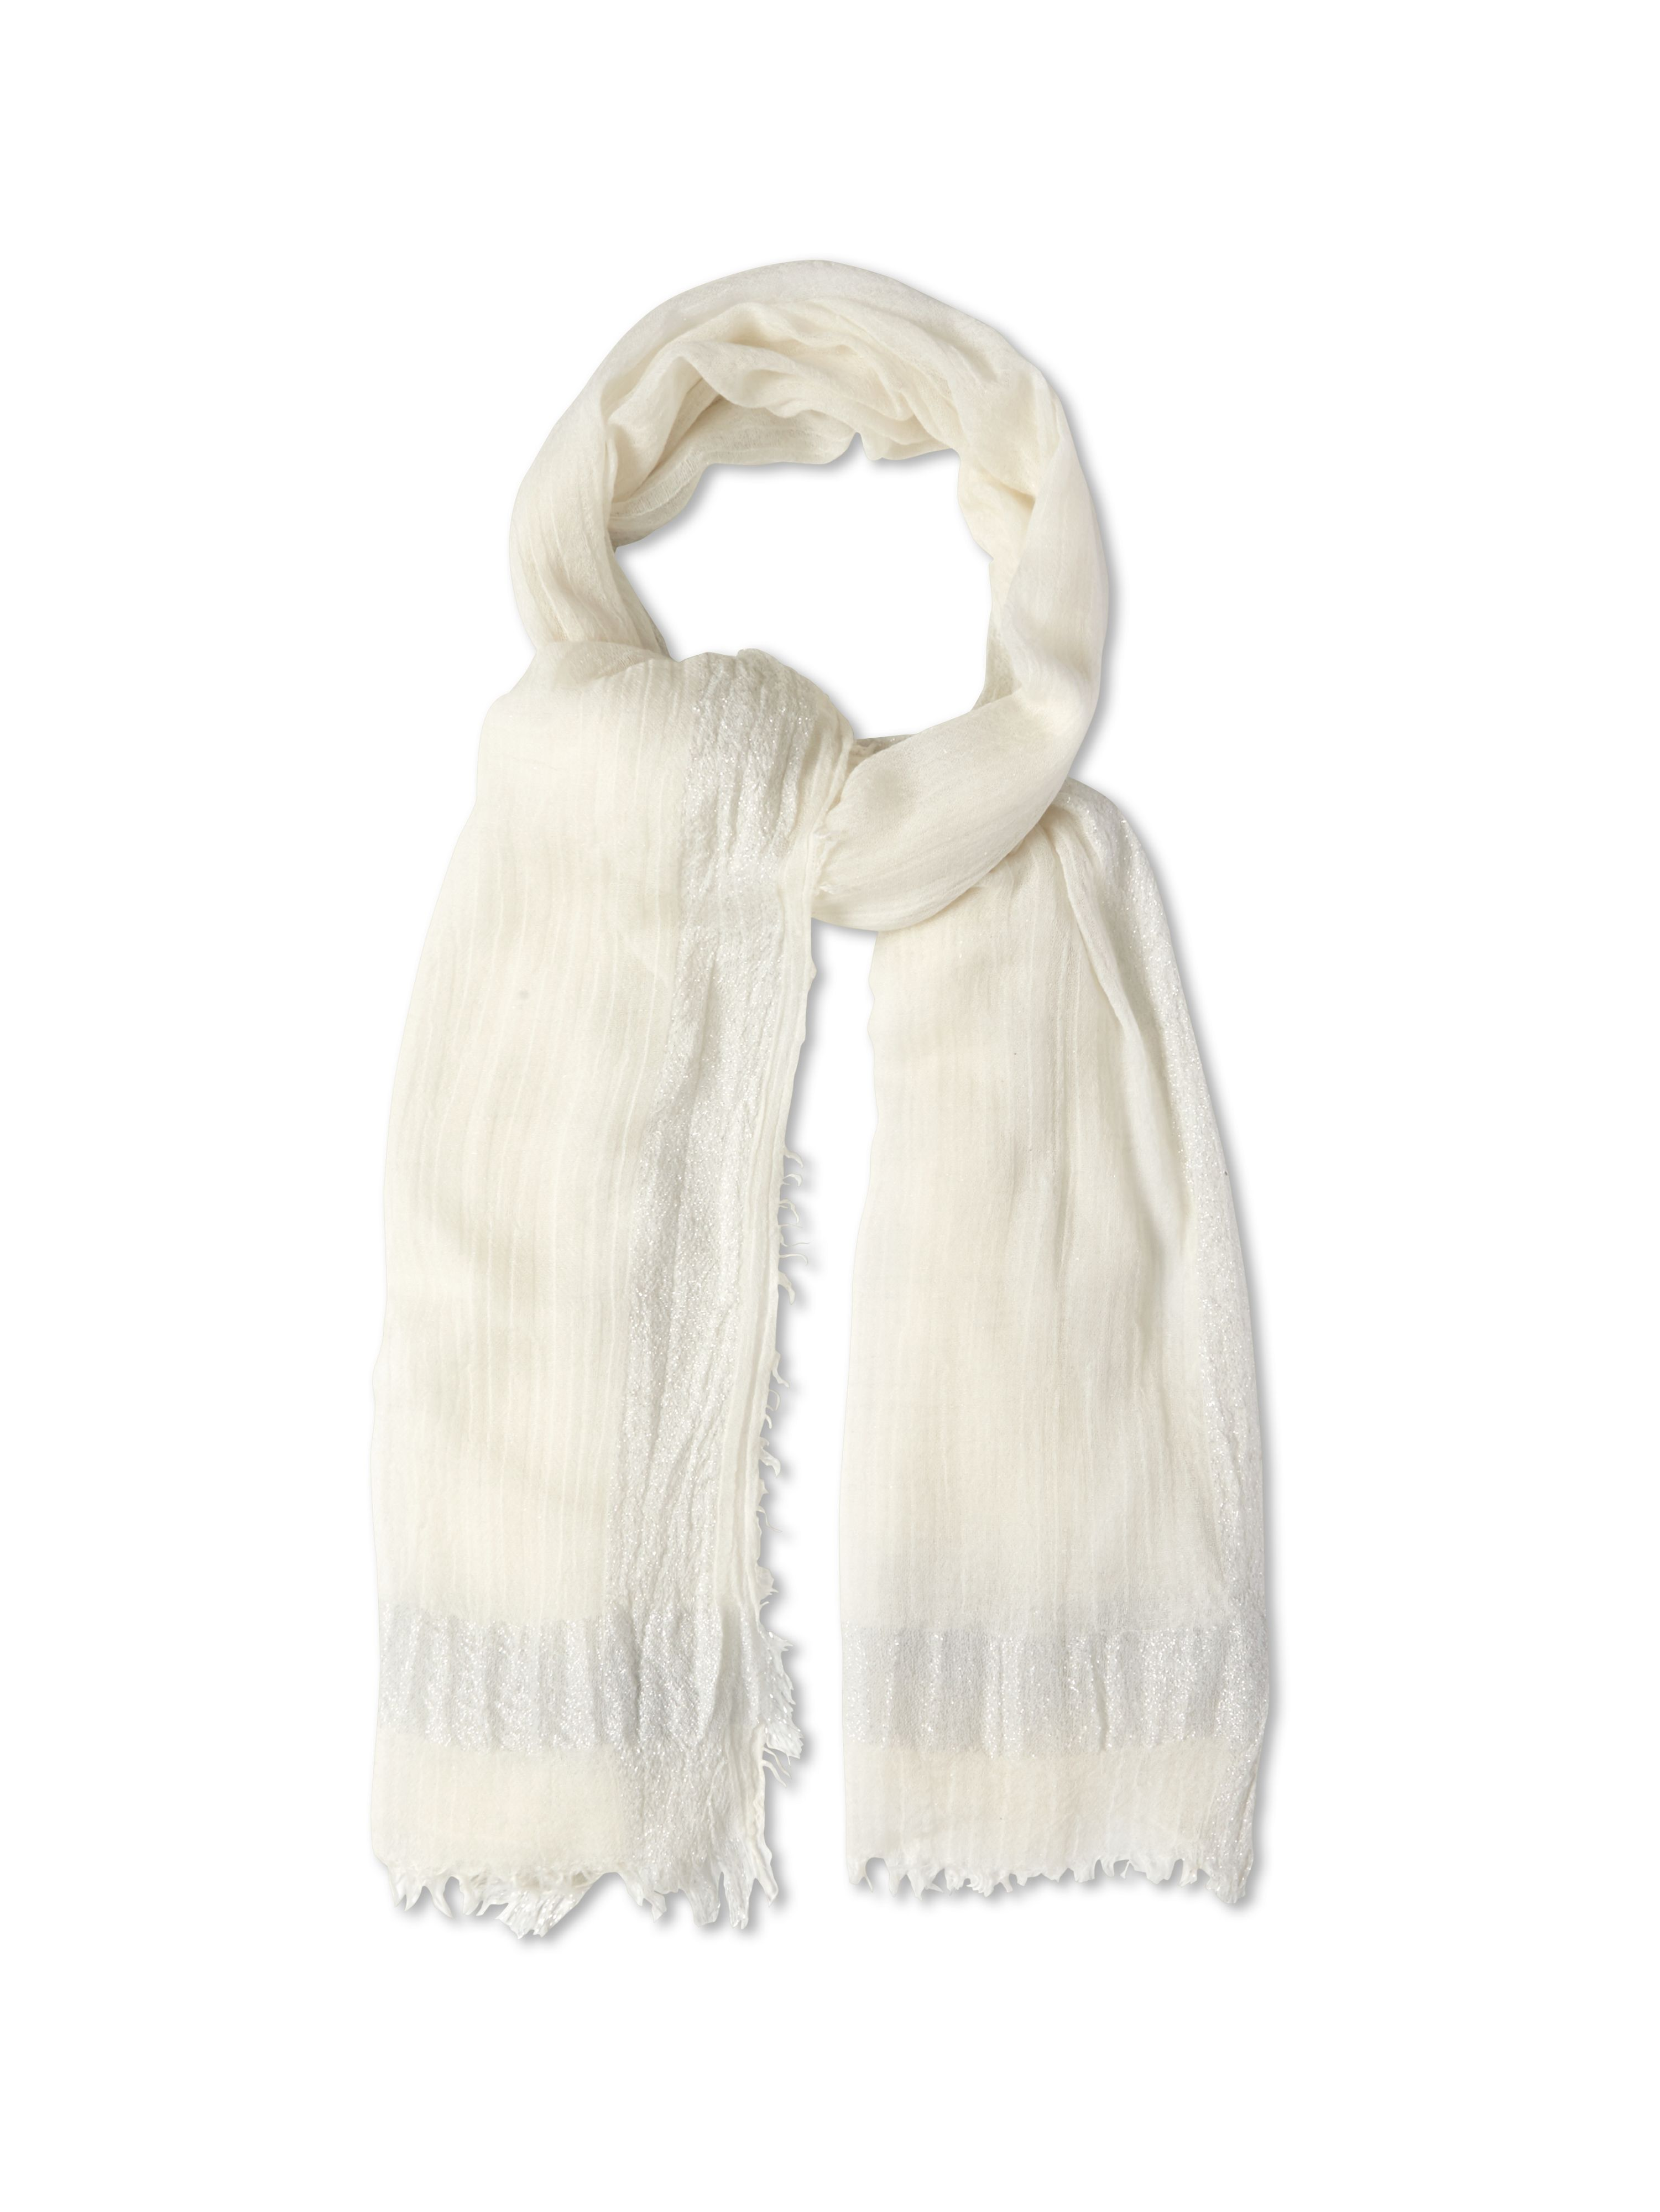 Lurex Dreaming Away Scarf